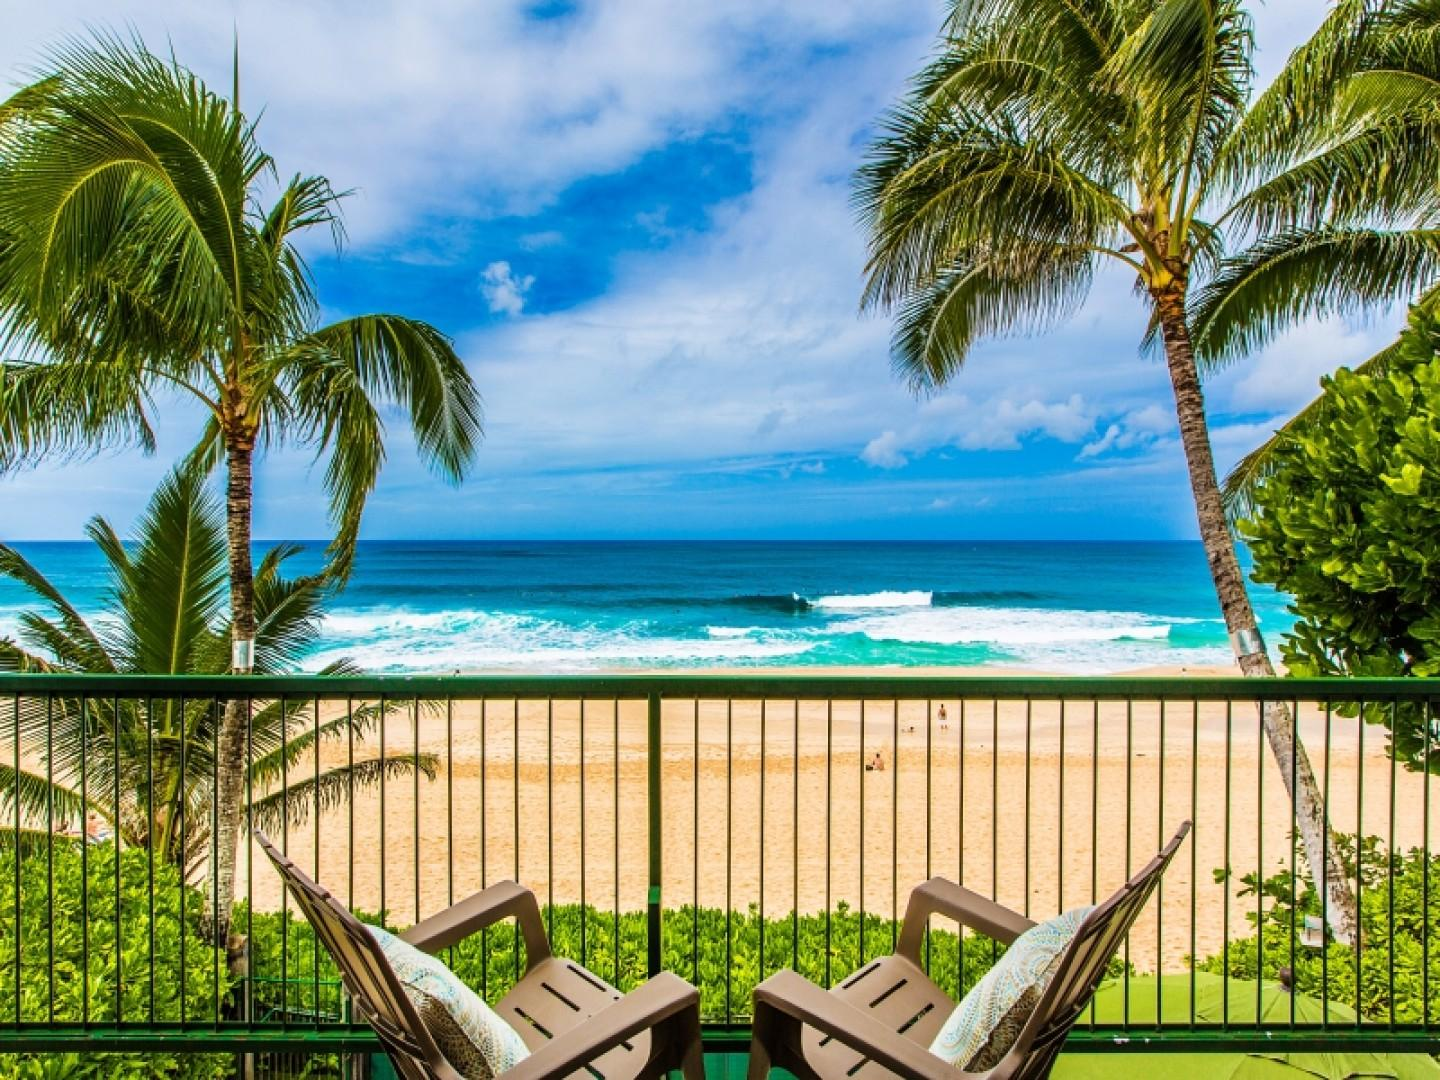 Master suite private lanai with breathtaking ocean views.